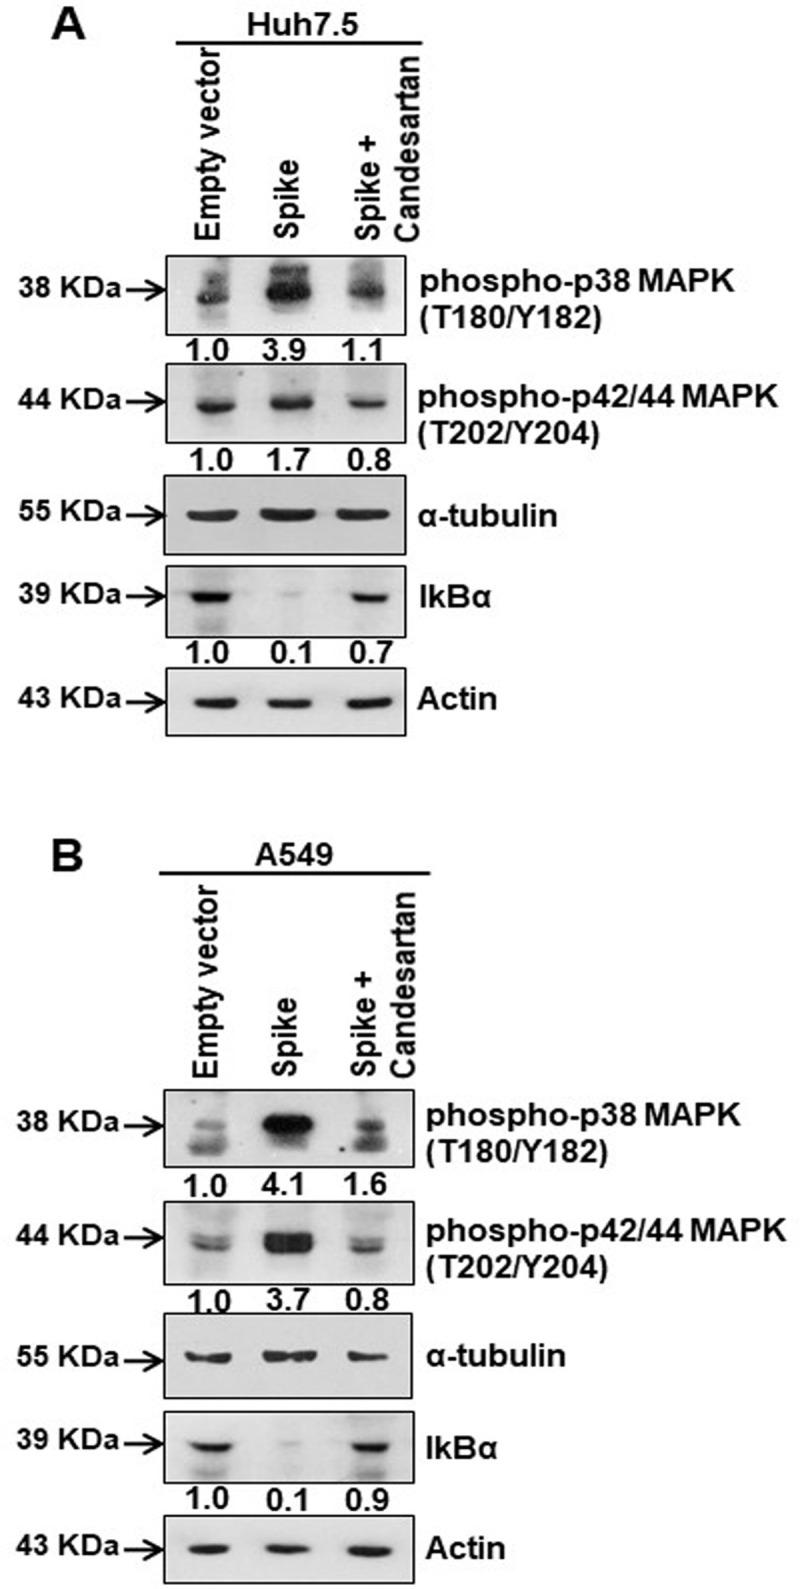 Candesartan cilexetil as an AT1 receptor antagonist prevent MAPK activation. (A) Western blot analysis of phospho-p38 MAPK (Thr180/Tyr182) and phospho-p42/44 MAPK (Thr202/Tyr204) in Huh7.5 cell lysates prepared after 48 h of transfection of SARS-CoV-2 spike gene construct with or without Candesartan cilexetil treatment. Expression level of actin in each lane is shown as a total protein loading control for comparison. (B) Western blot analysis of phospho-p38 MAPK (Thr180/Tyr182) and phospho-p42/44 MAPK (Thr202/Tyr204) in A549 cell lysates prepared after 48 h of transfection of SARS-CoV-2 spike gene construct with or without Candesartan cilexetil treatment. Expression level of actin or tubulin in each lane from the same gel is shown as a total protein load for comparison.